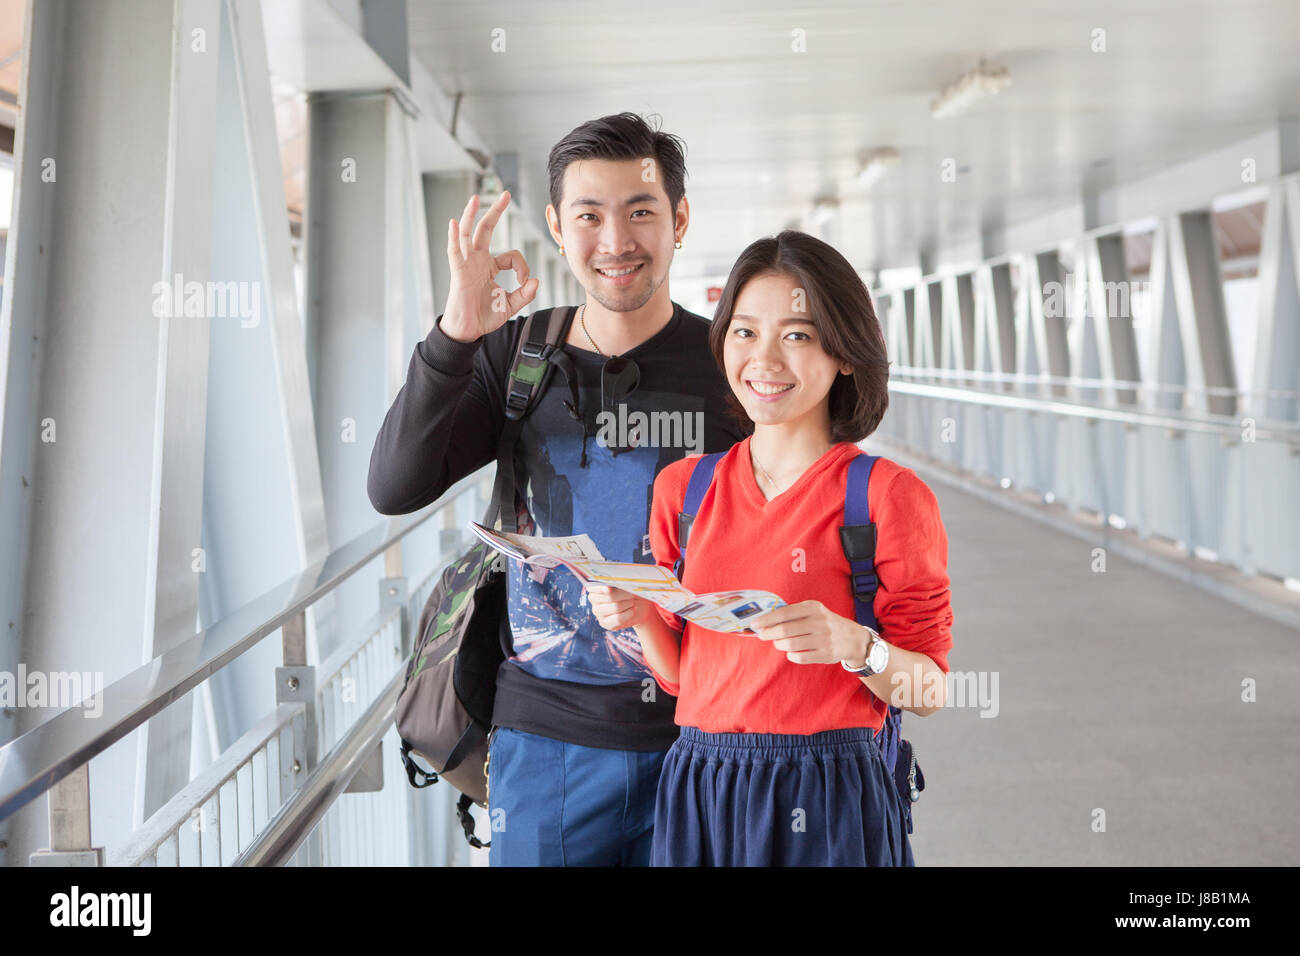 Adult Asia Travel